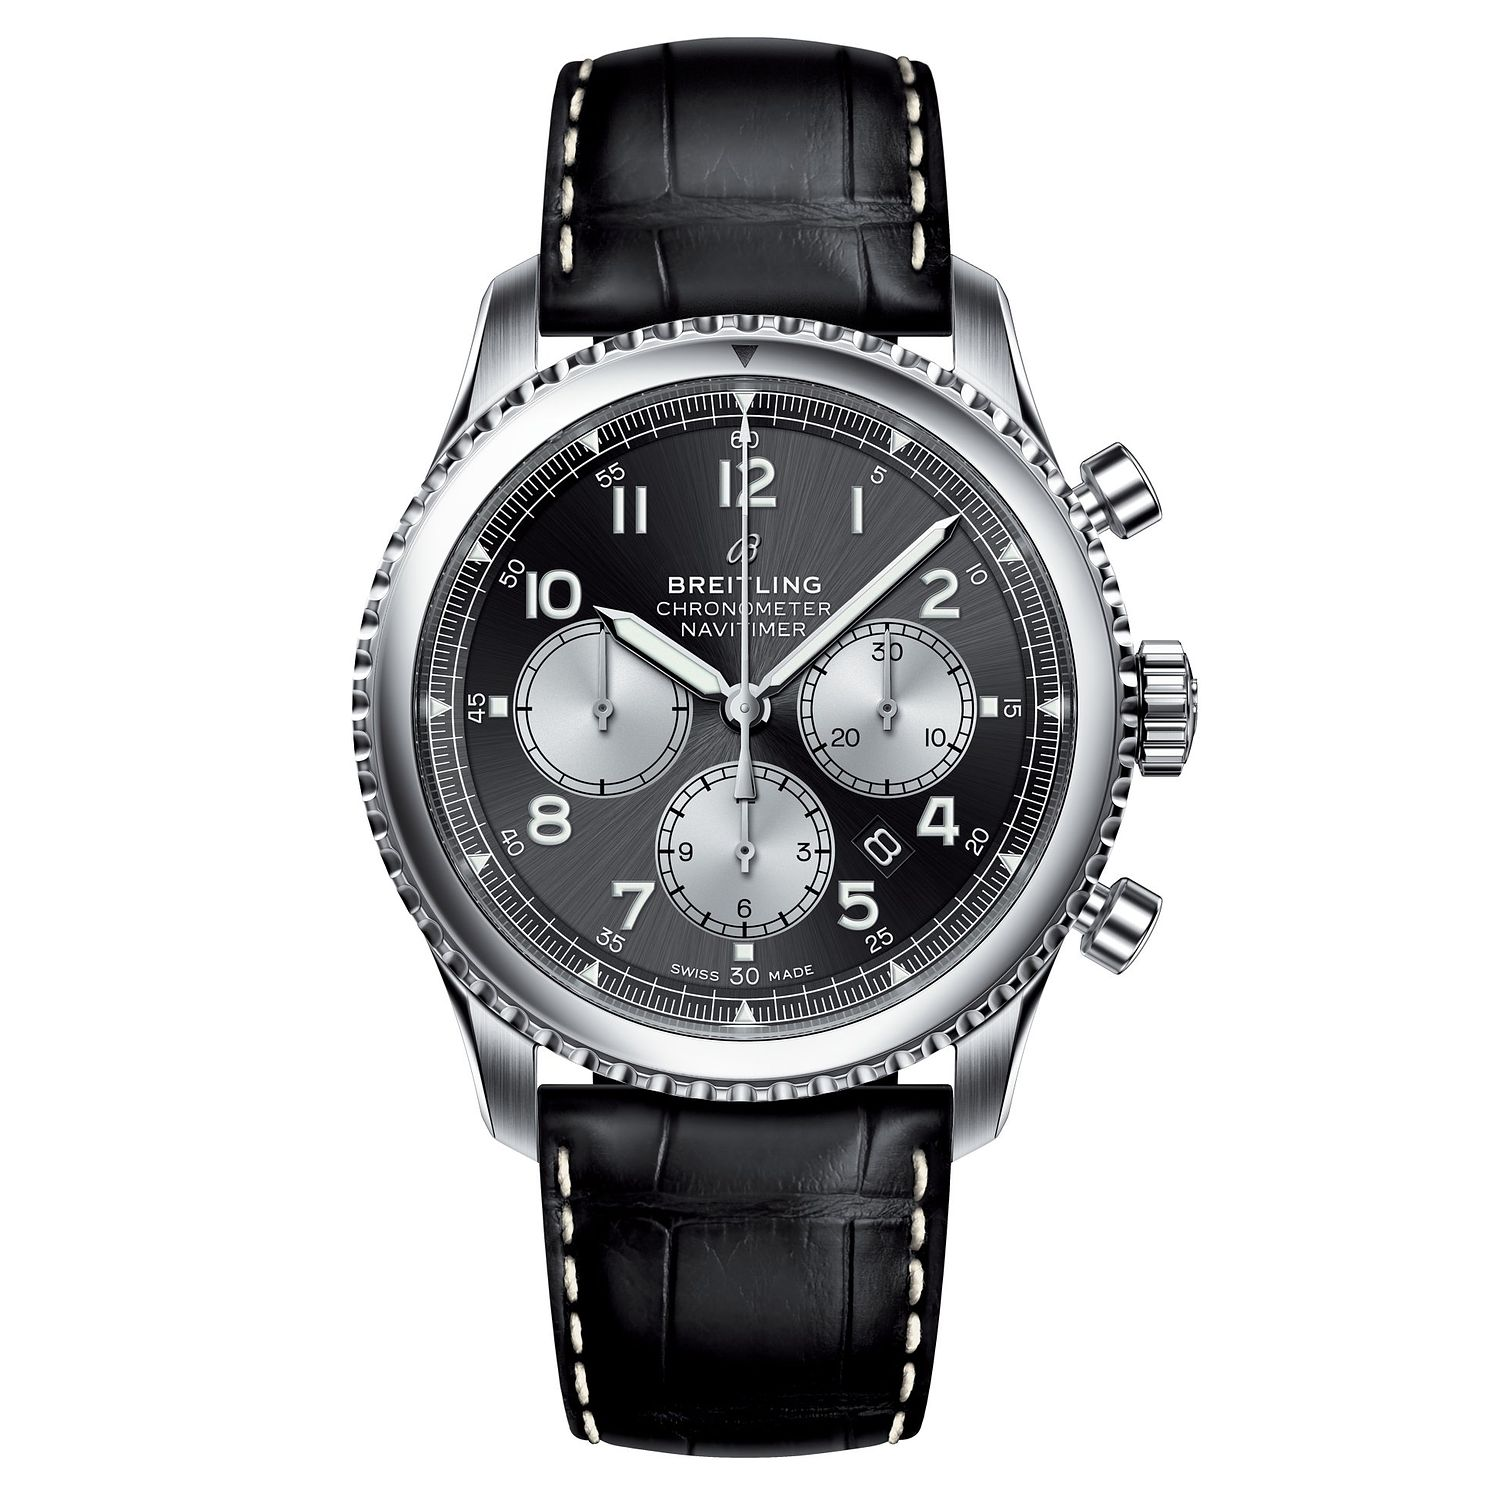 Breitling Aviator 8 B01 Men's Black Leather Strap Watch - Product number 8559848